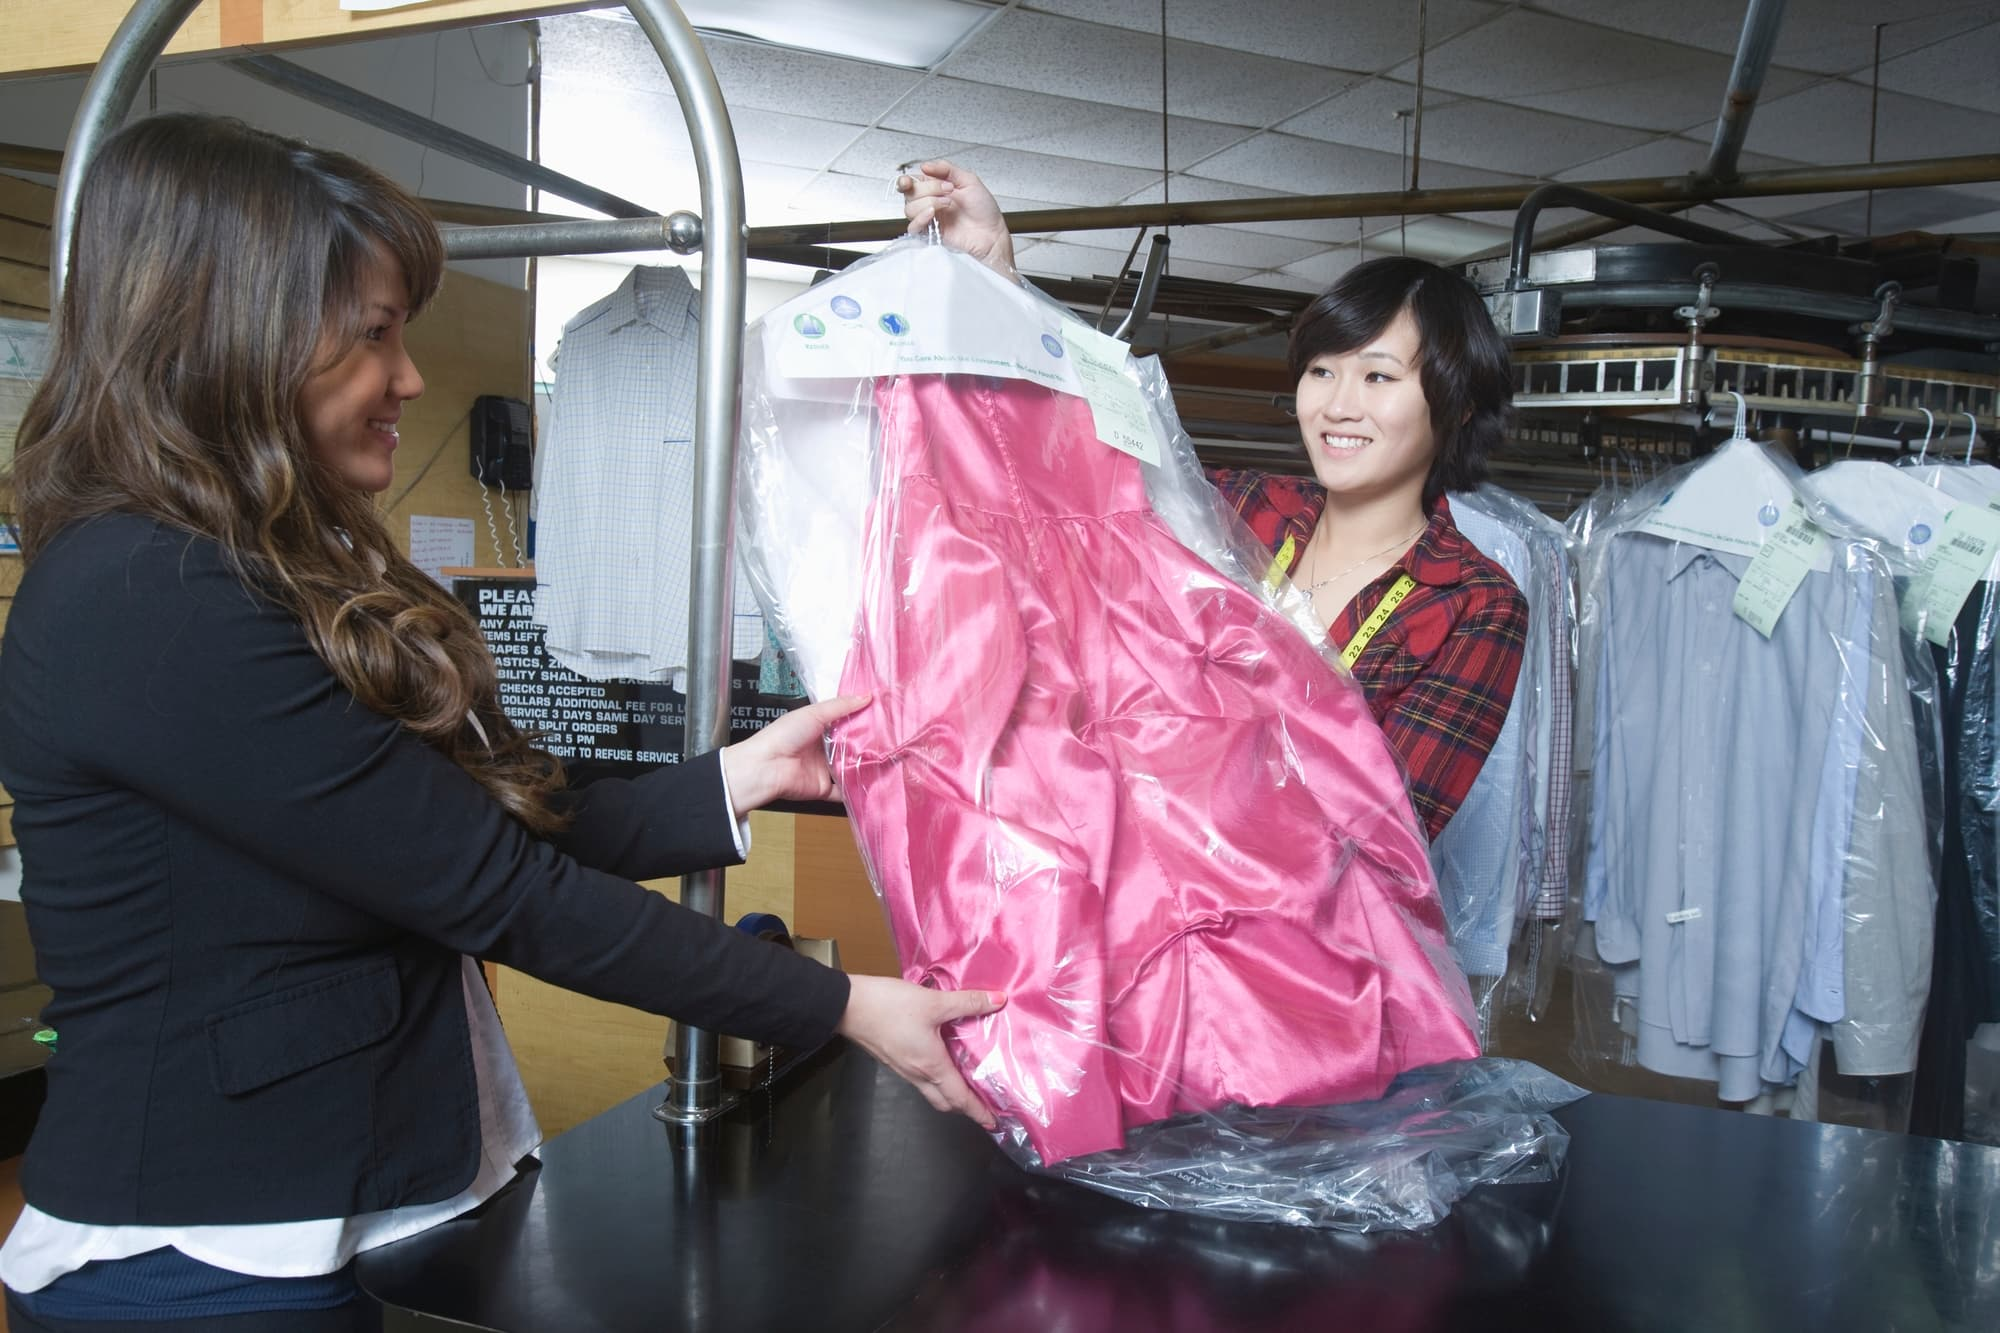 10 Best Dry Cleaning Services in Singapore from $2